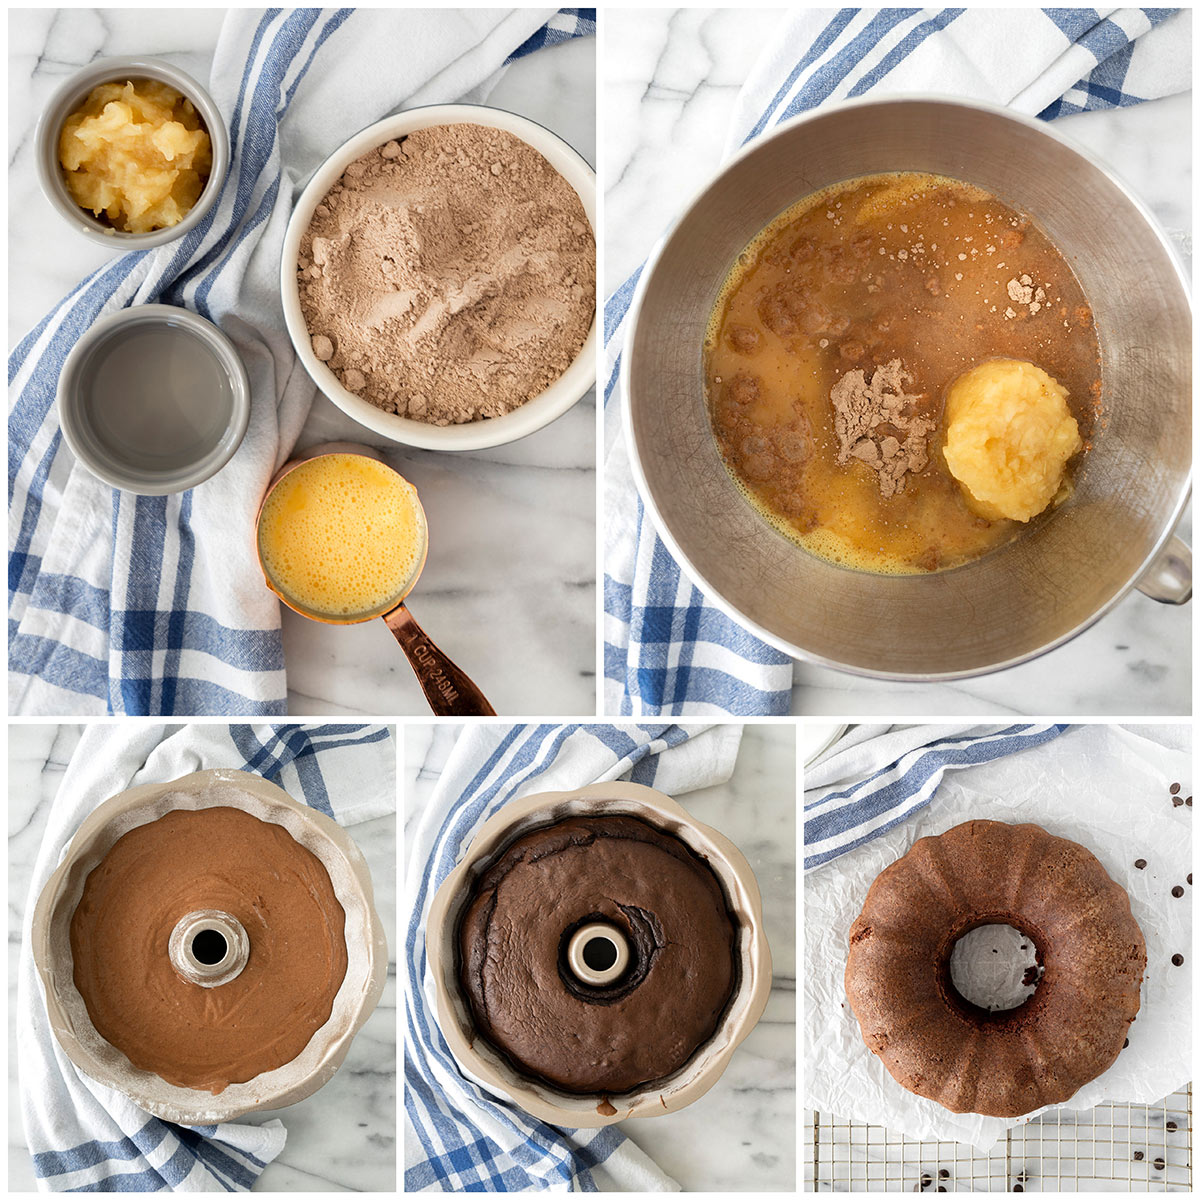 Five photos - one showing the ingredients to make the cake, one showing the ingredients in a mixing bowl and one of the unbaked cake in the bundt pan, one photo of the baked cake in the bundt pan and the final photo is of the bundt cake unmolded on a parchment paper.